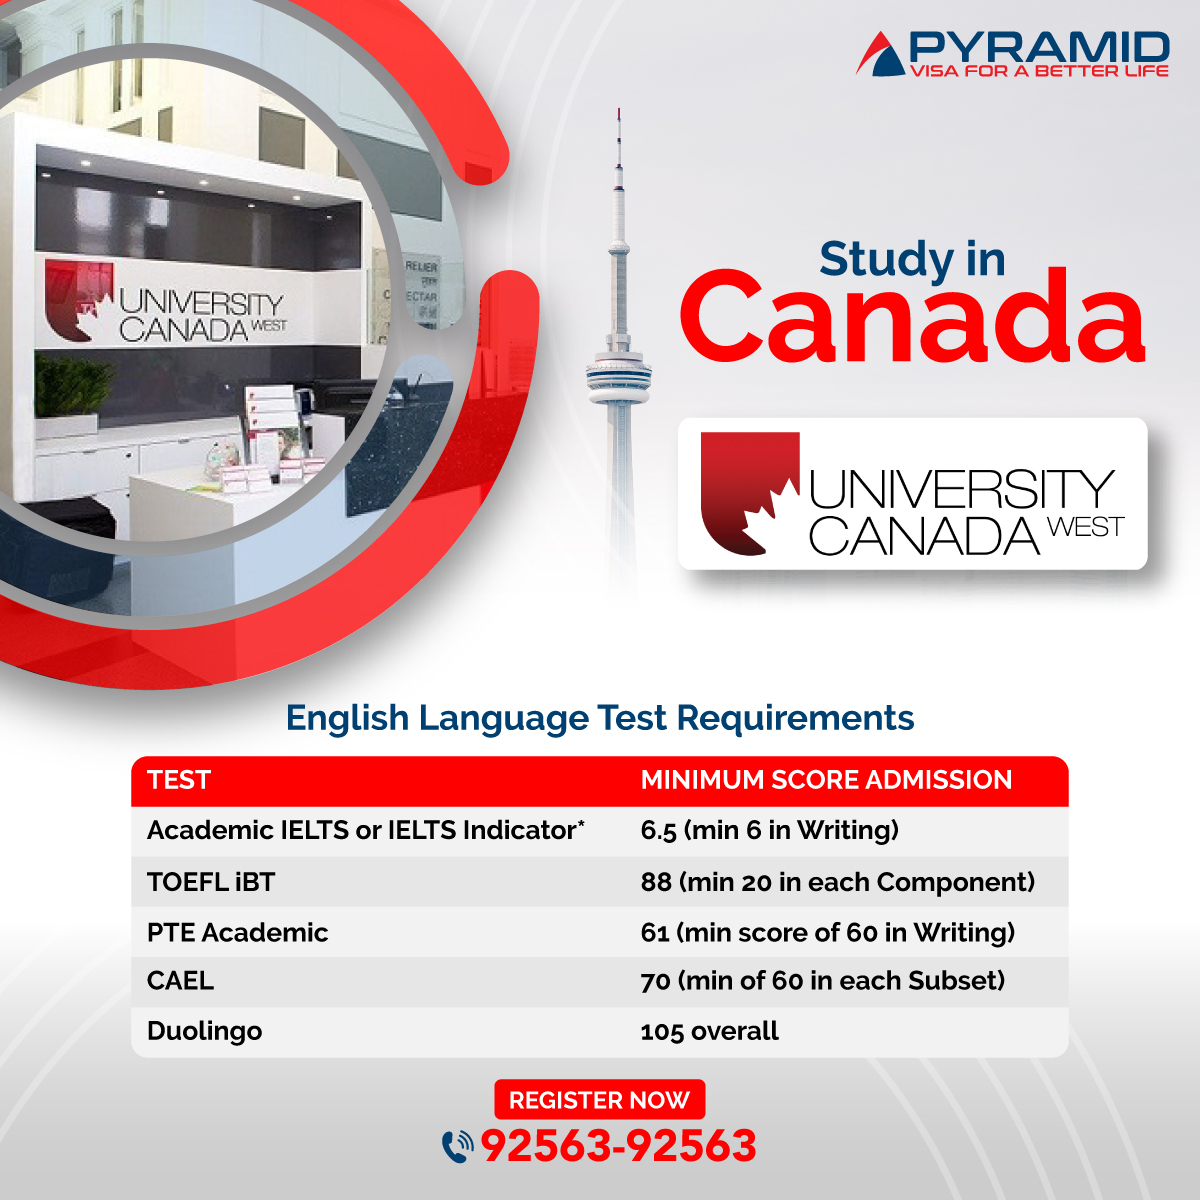 Checkout #English #Test requirements to study at #UCW, Canada🇨🇦️.  You can apply with 👉Academic #IELTS or IELTS Indicator | 👉#TOEFL iBT 👉 #PTE Academic | 👉 #CAEL | 👉 #DUOLINGO. Call us at 📱- 92563-92563 #StudyinCanada🇨🇦️ #studyvisa #PyramideServices_Hyderabad #StudyinUCW https://t.co/lQgzIhtt7T